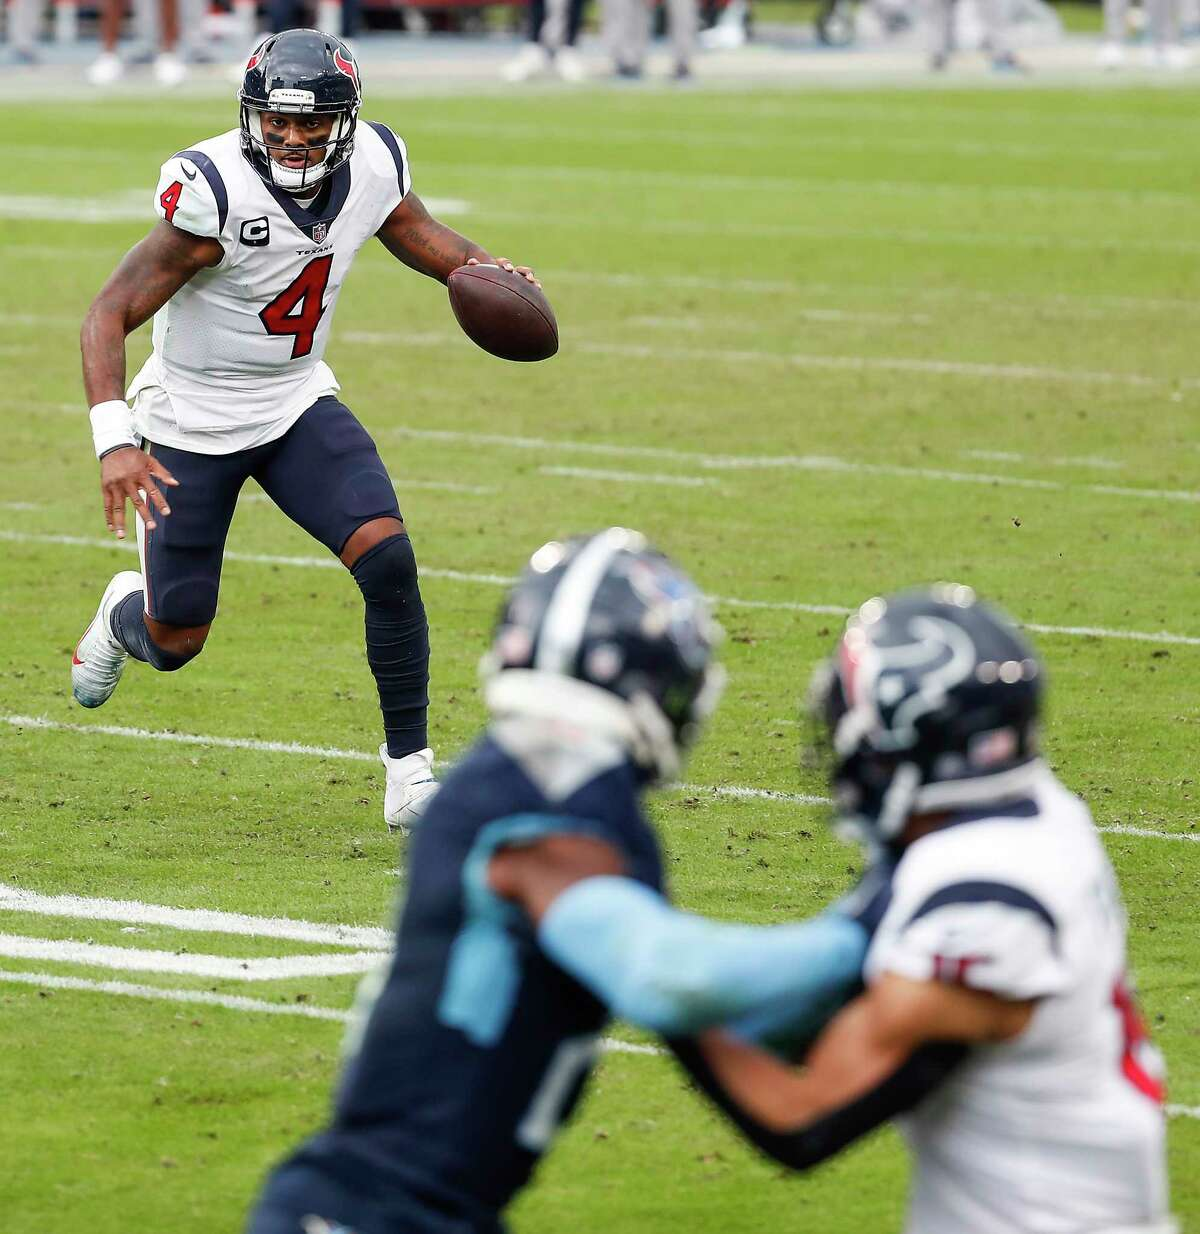 Houston Texans quarterback Deshaun Watson (4) rolls out to pass against the Tennessee Titans during the fourth quarter of an NFL football game at Nissan Stadium on Sunday, Oct. 18, 2020, in Nashville.